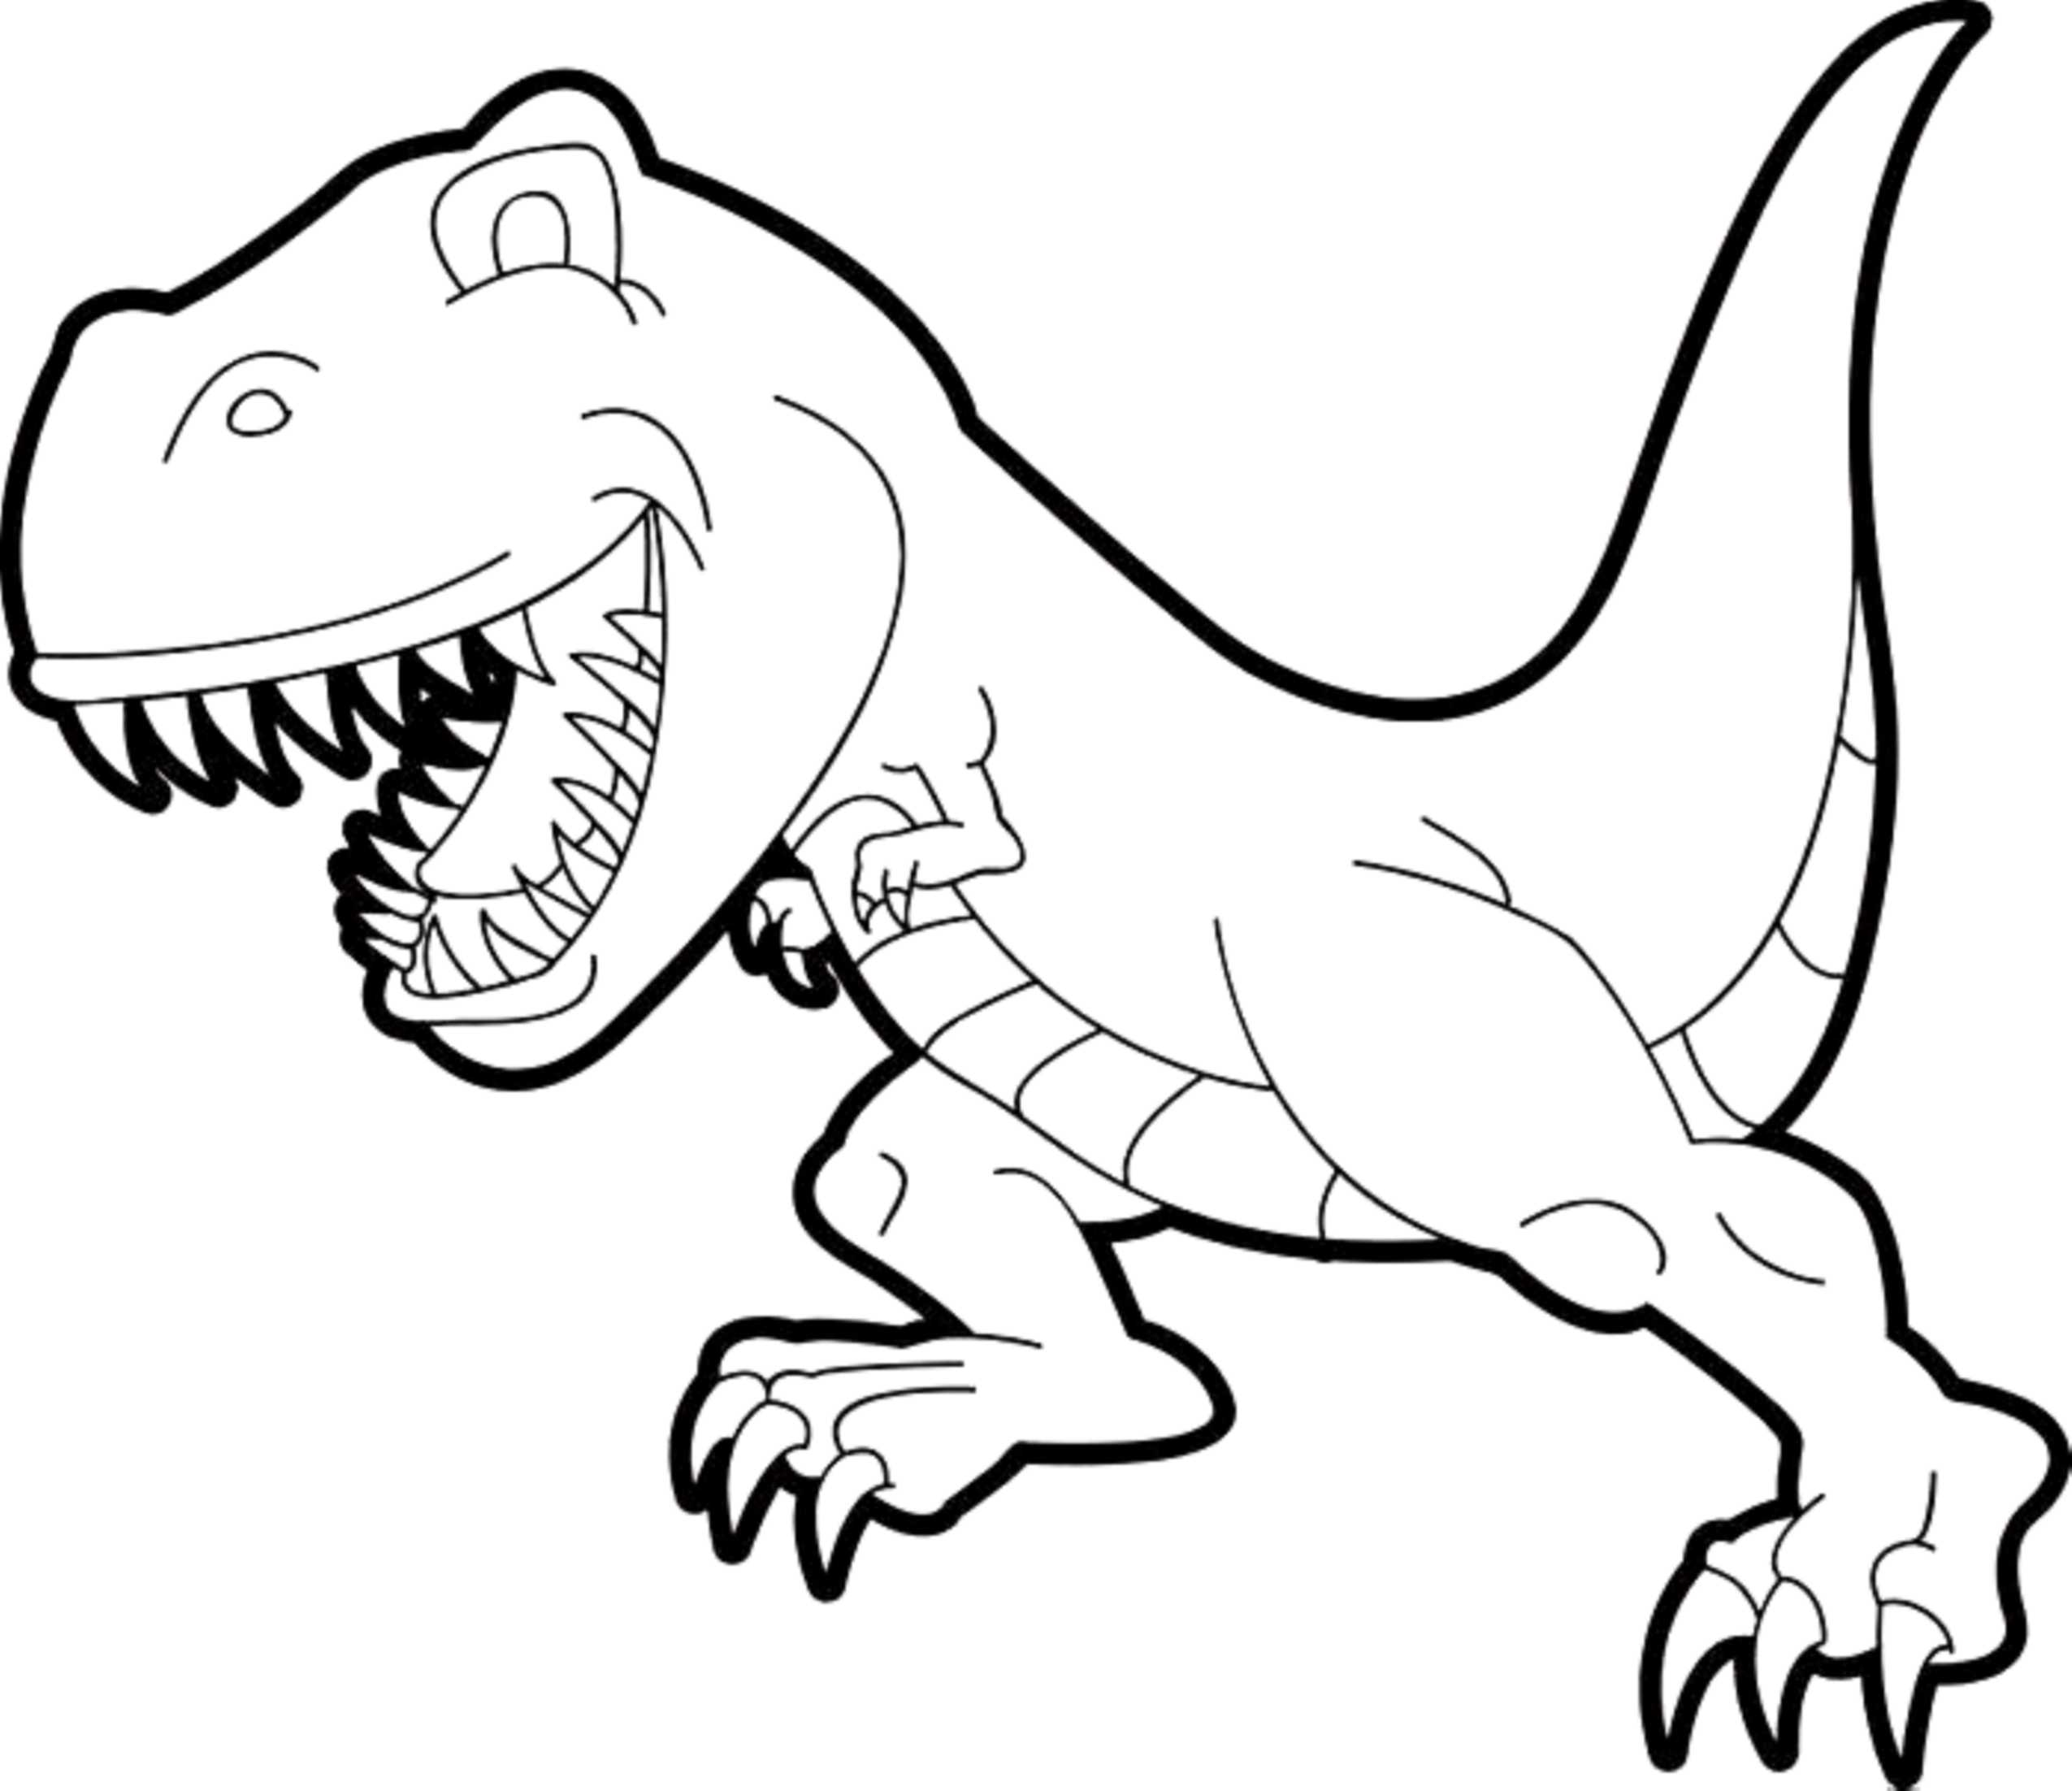 dinosaur coloring pages for kids dinosaurs to print triceratops dinosaurs kids coloring pages kids for coloring dinosaur